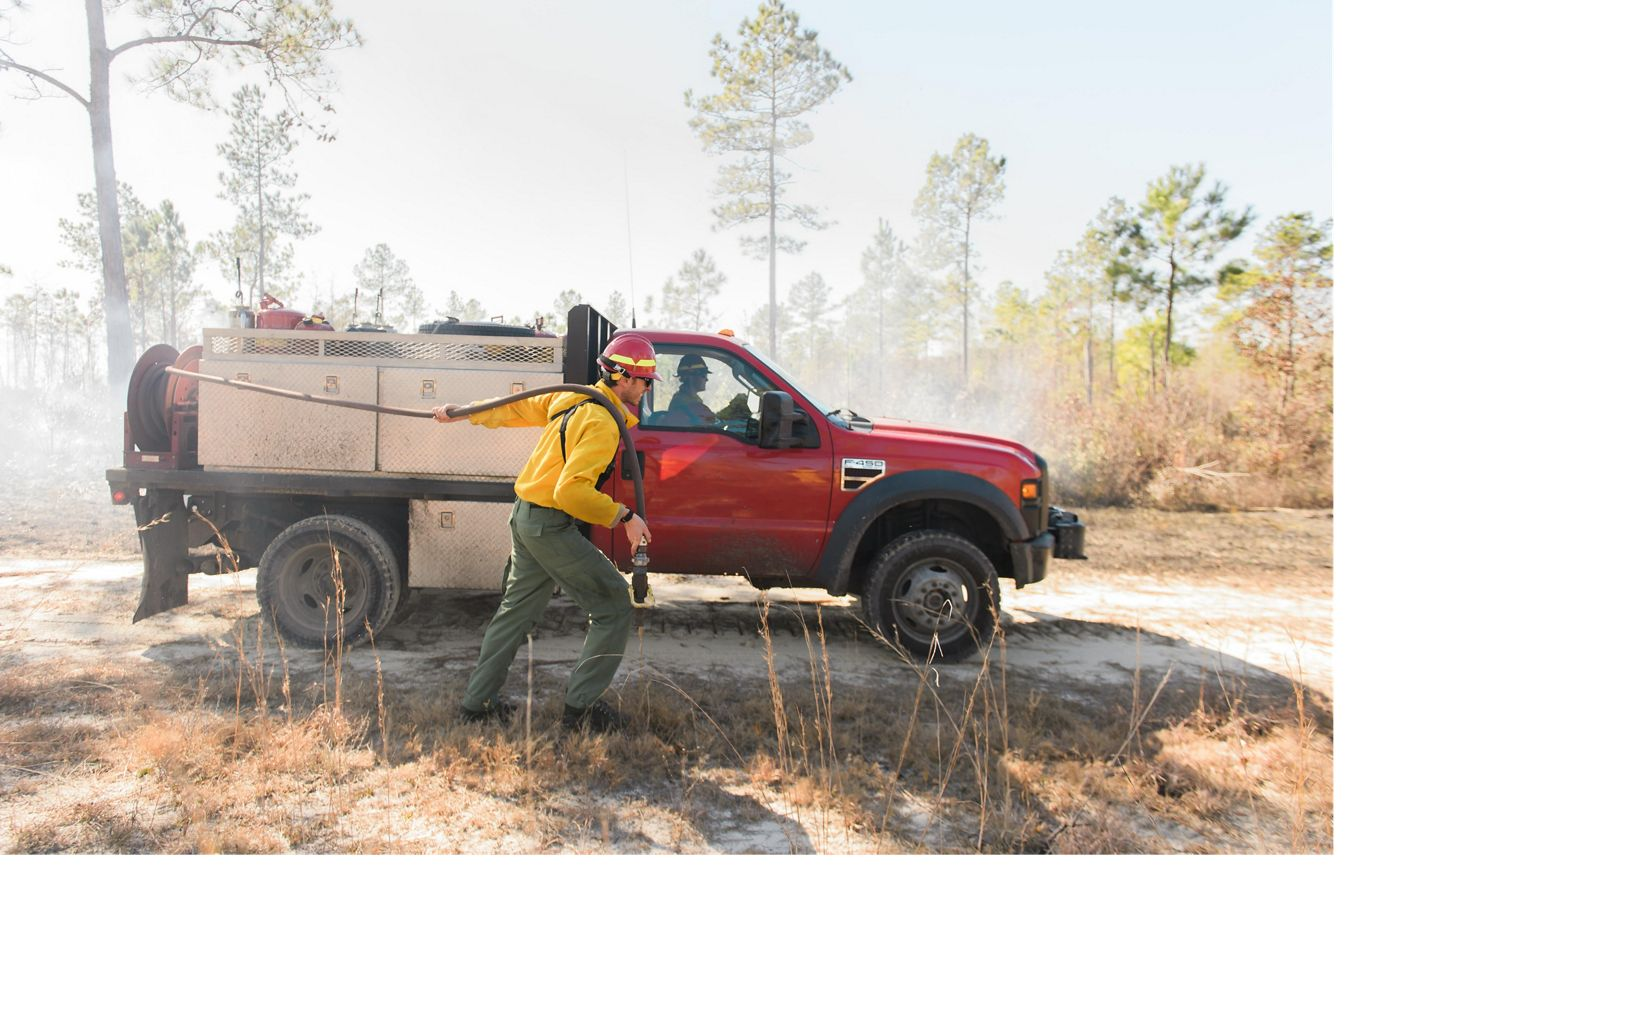 Wetting the fire lines of a controlled burn in North Carolina's Green Swamp.